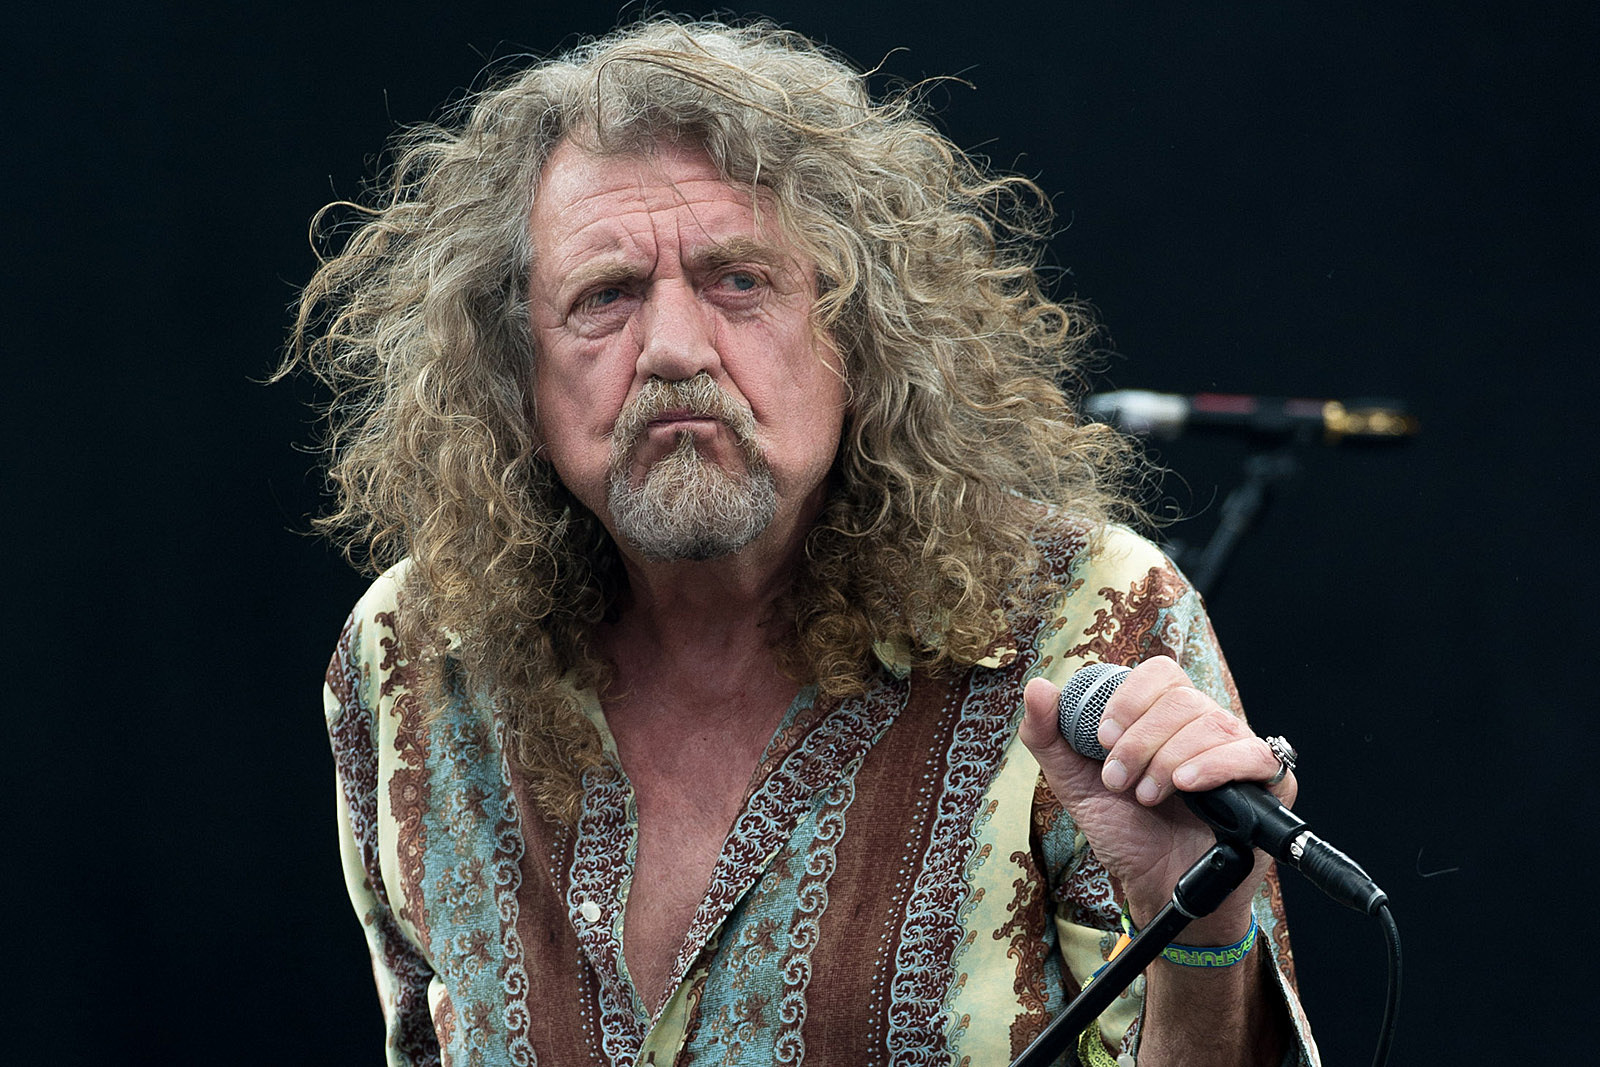 Robert Plant Says He Sometimes 'Missed the Mark' in Led Zeppelin